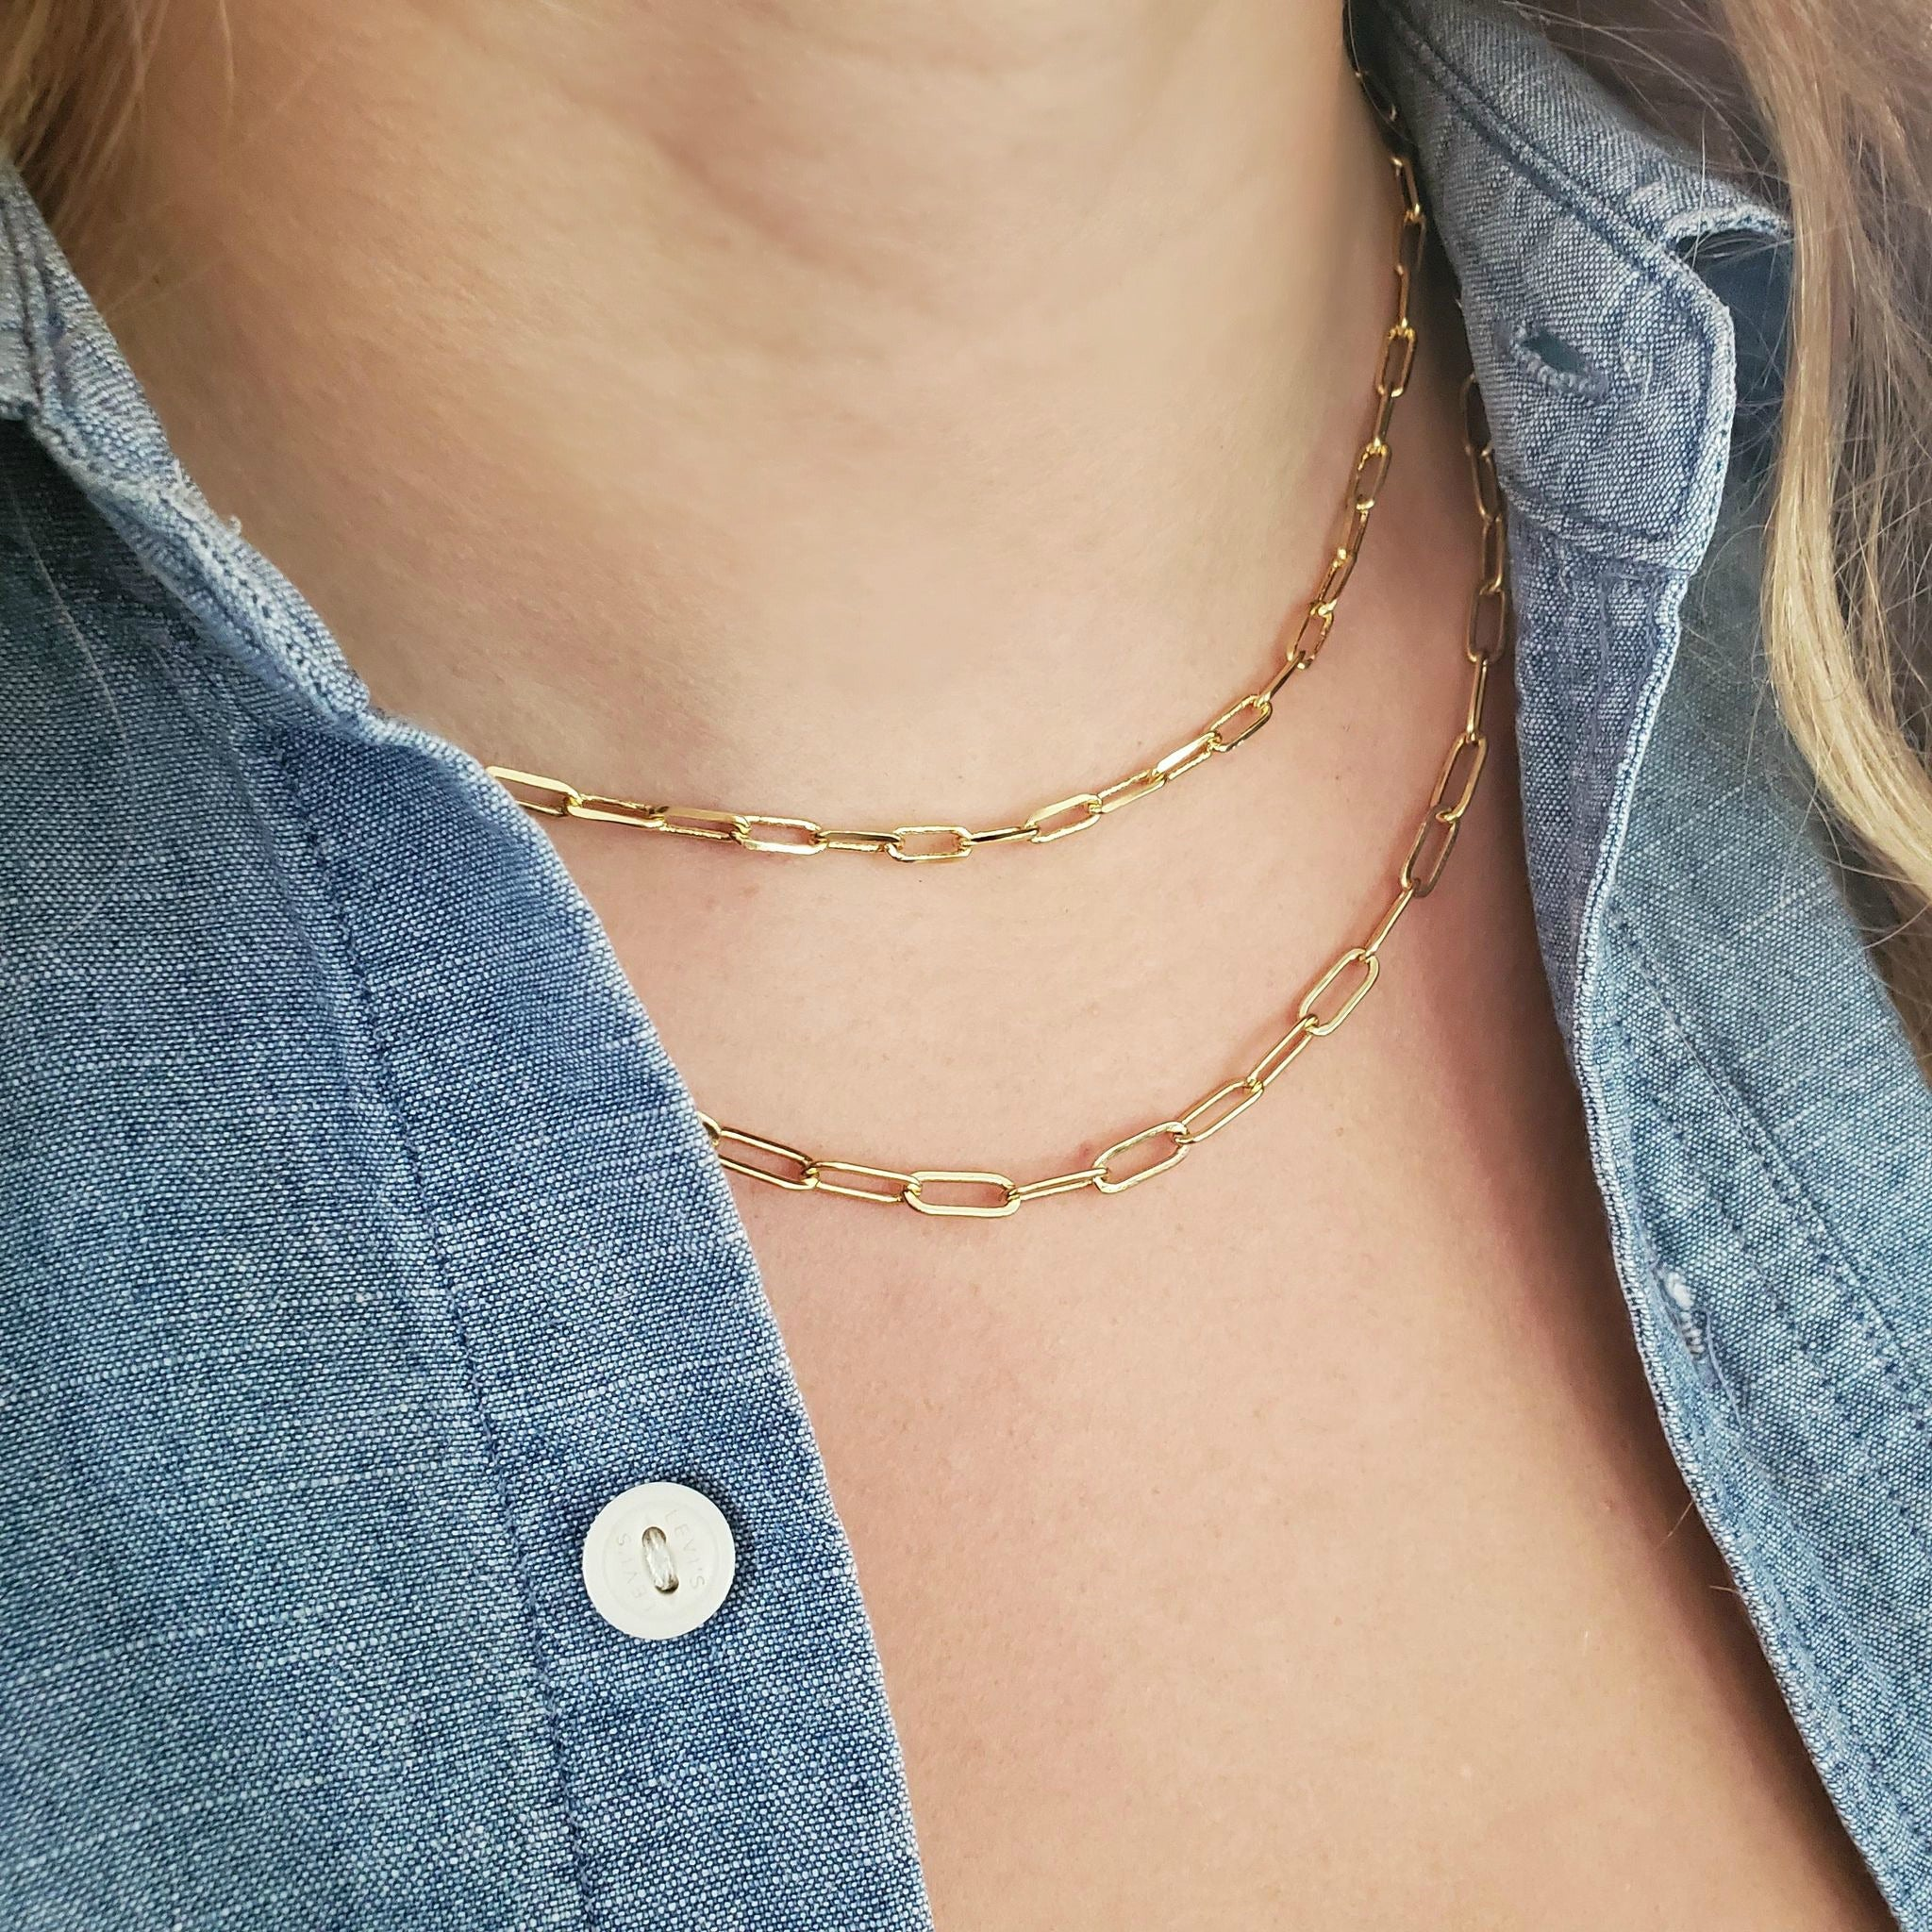 Gold Filled Regular Paperclip Chain Necklace-Women Necklace-Gold as Ice